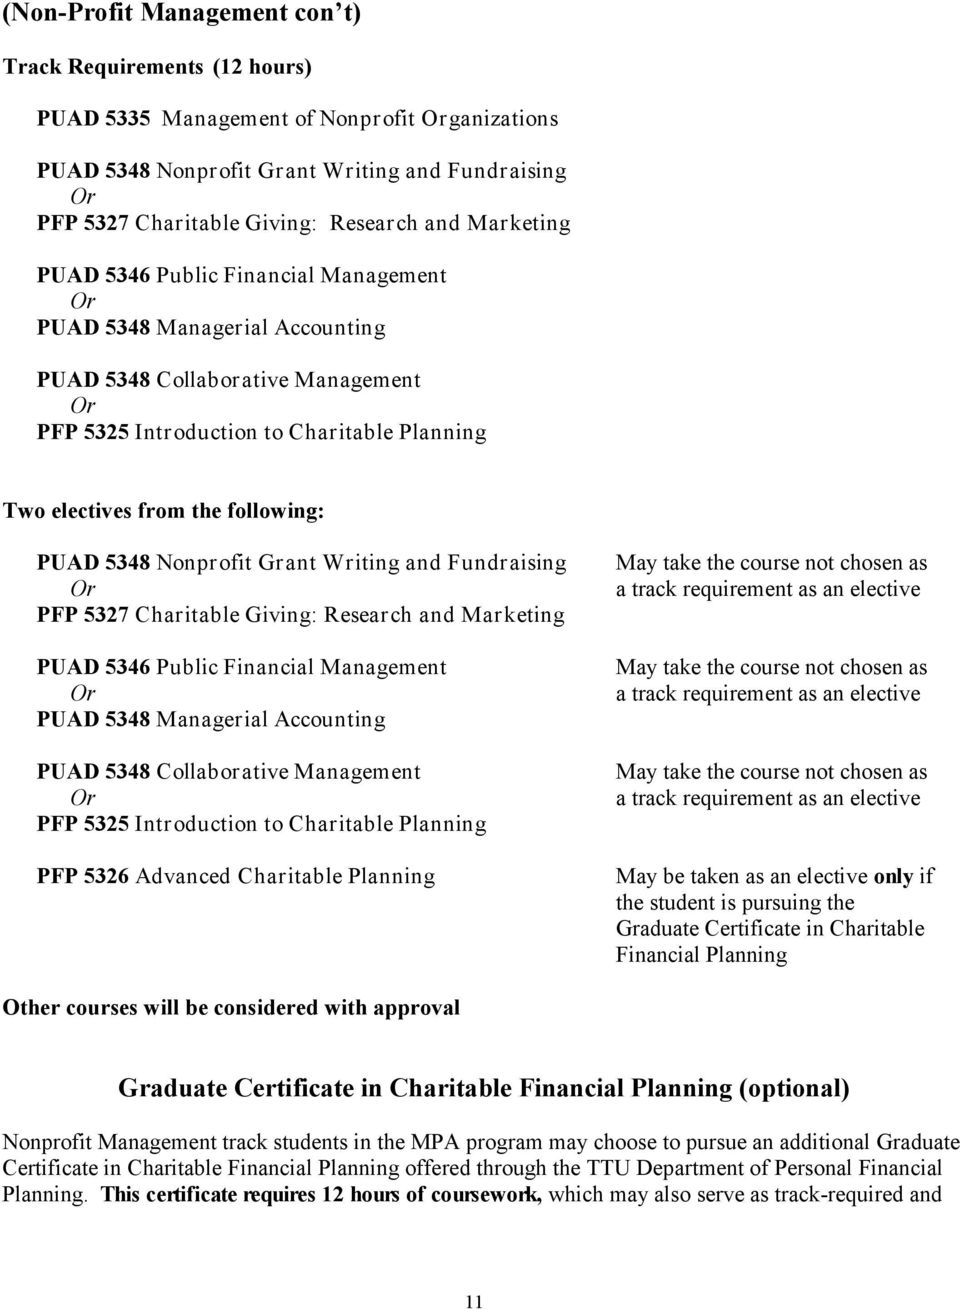 following: PUAD 5348 Nonprofit Grant Writing and Fundraising Or PFP 5327 Charitable Giving: Research and Marketing PUAD 5346 Public Financial Management Or PUAD 5348 Managerial Accounting PUAD 5348